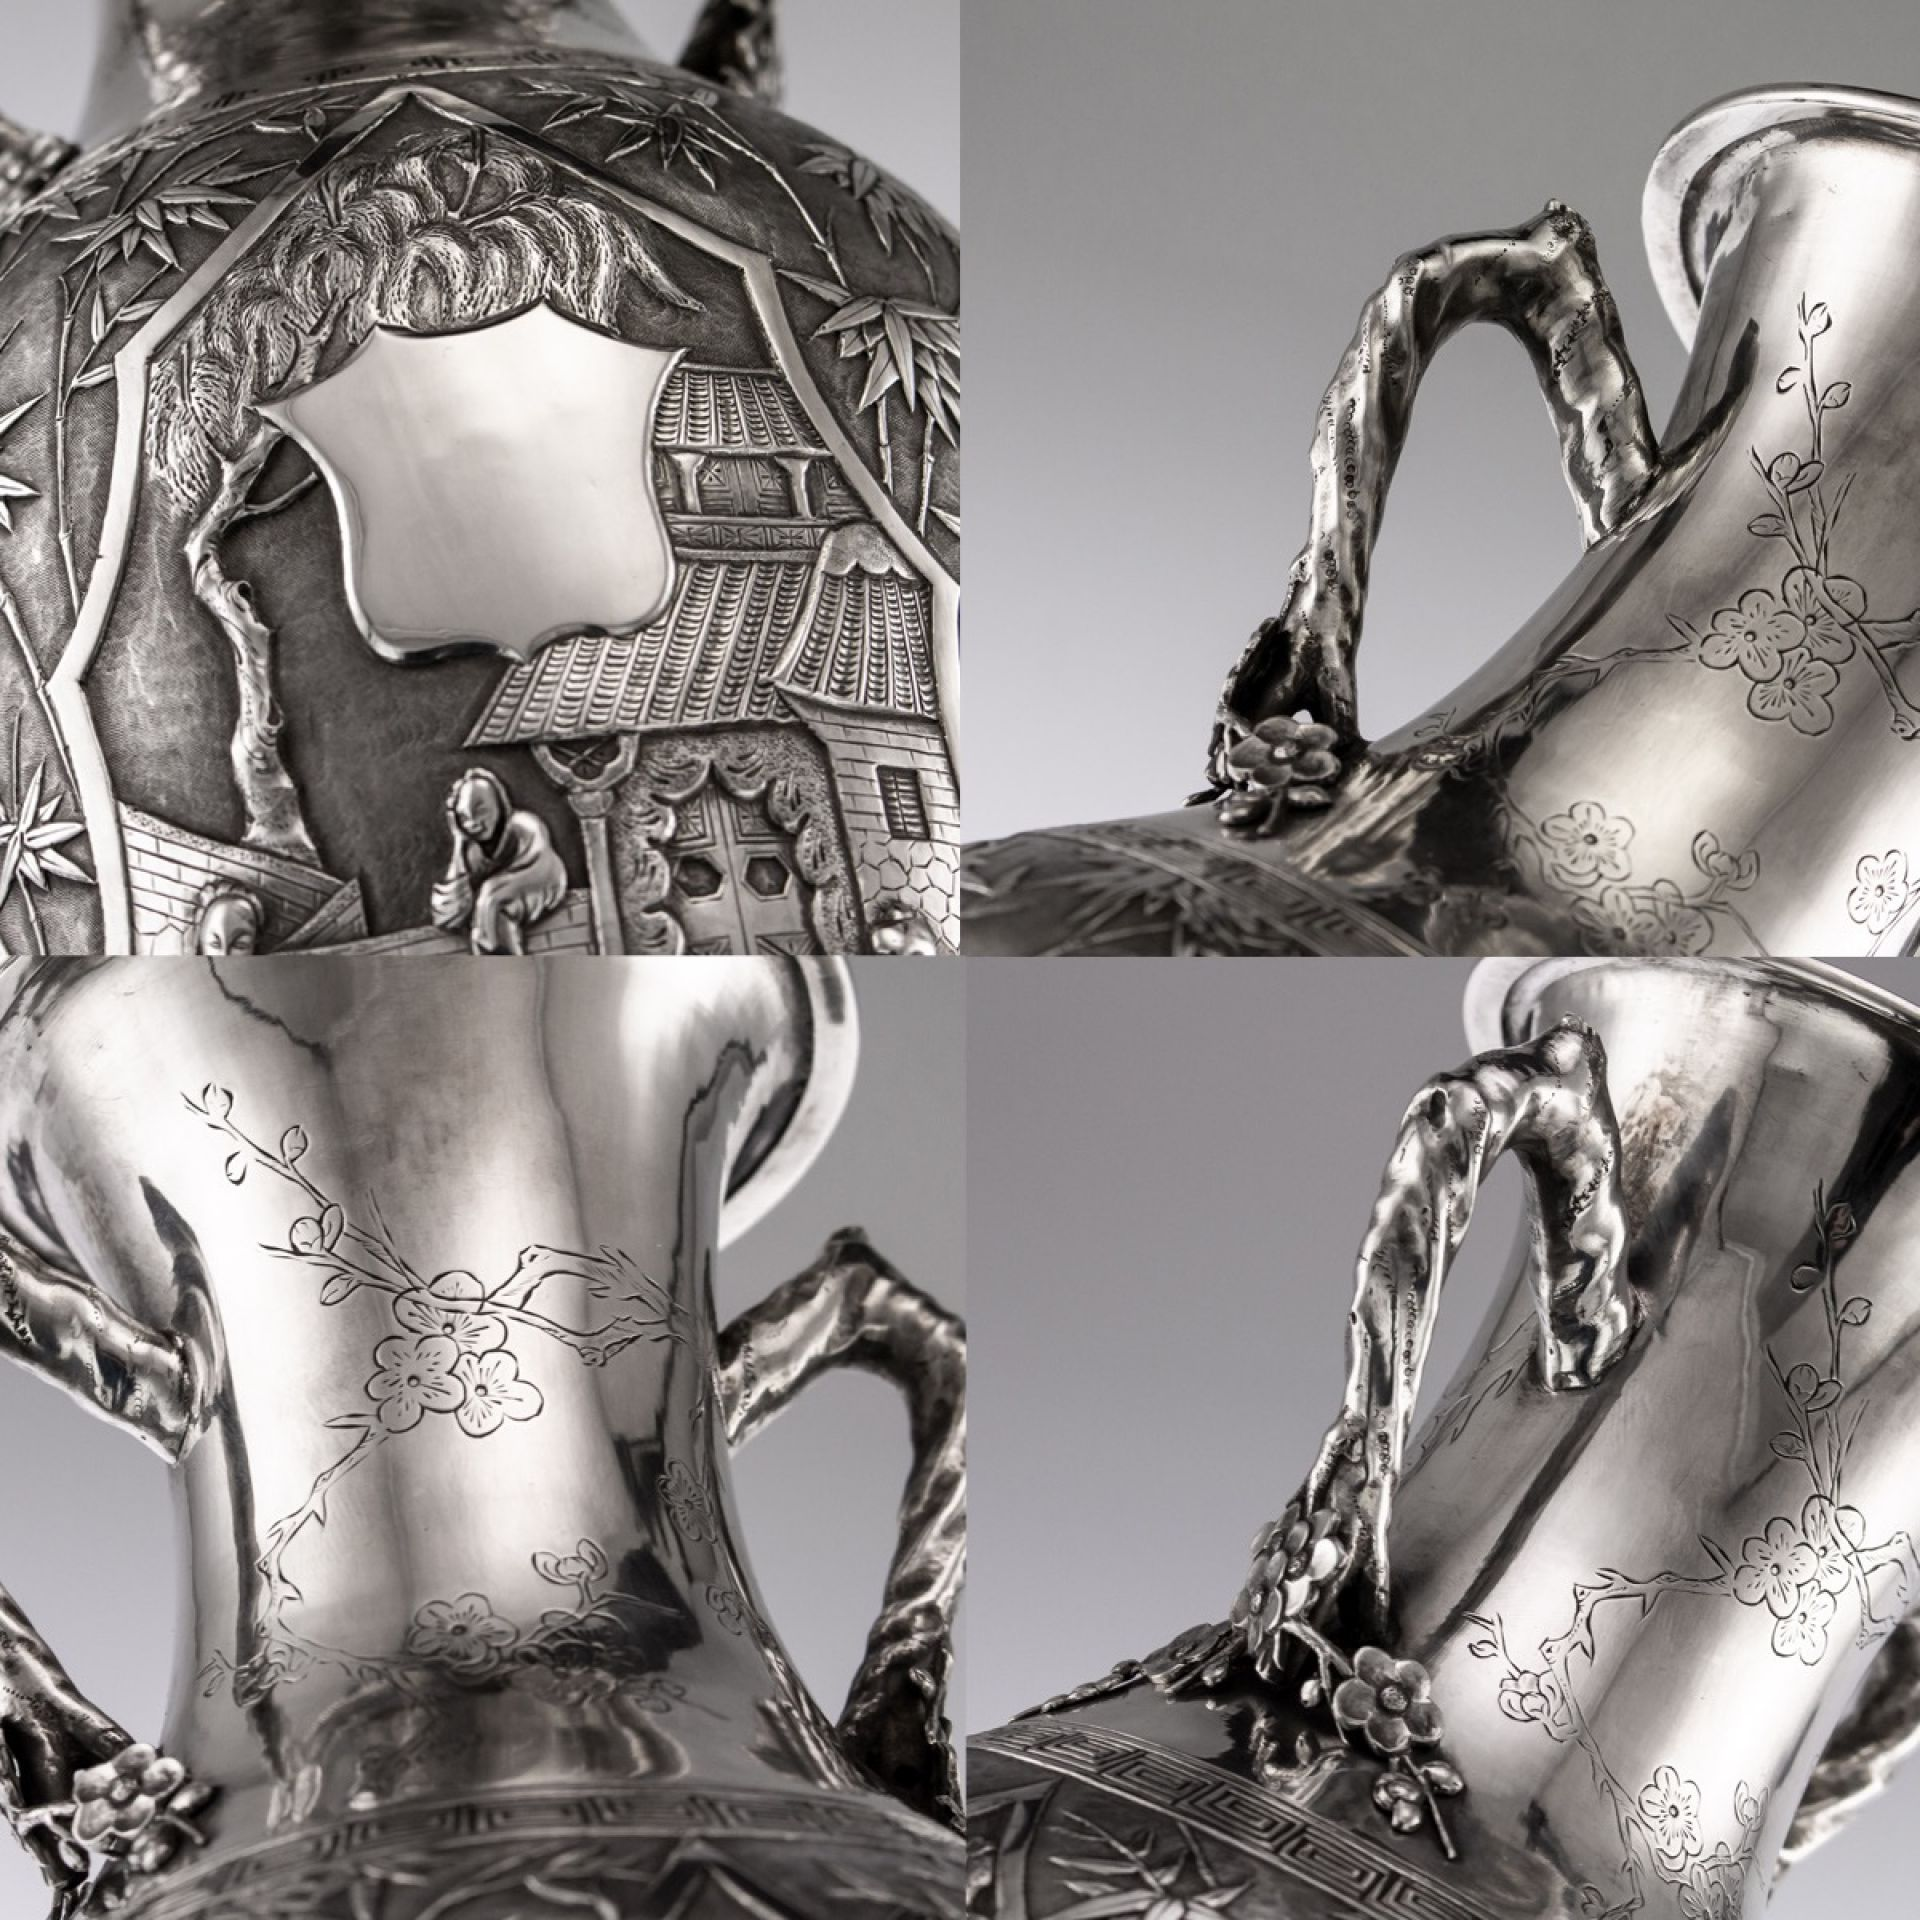 ANTIQUE 19thC CHINESE EXPORT SOLID SILVER MASSIVE VASE, CUM WO c.1890